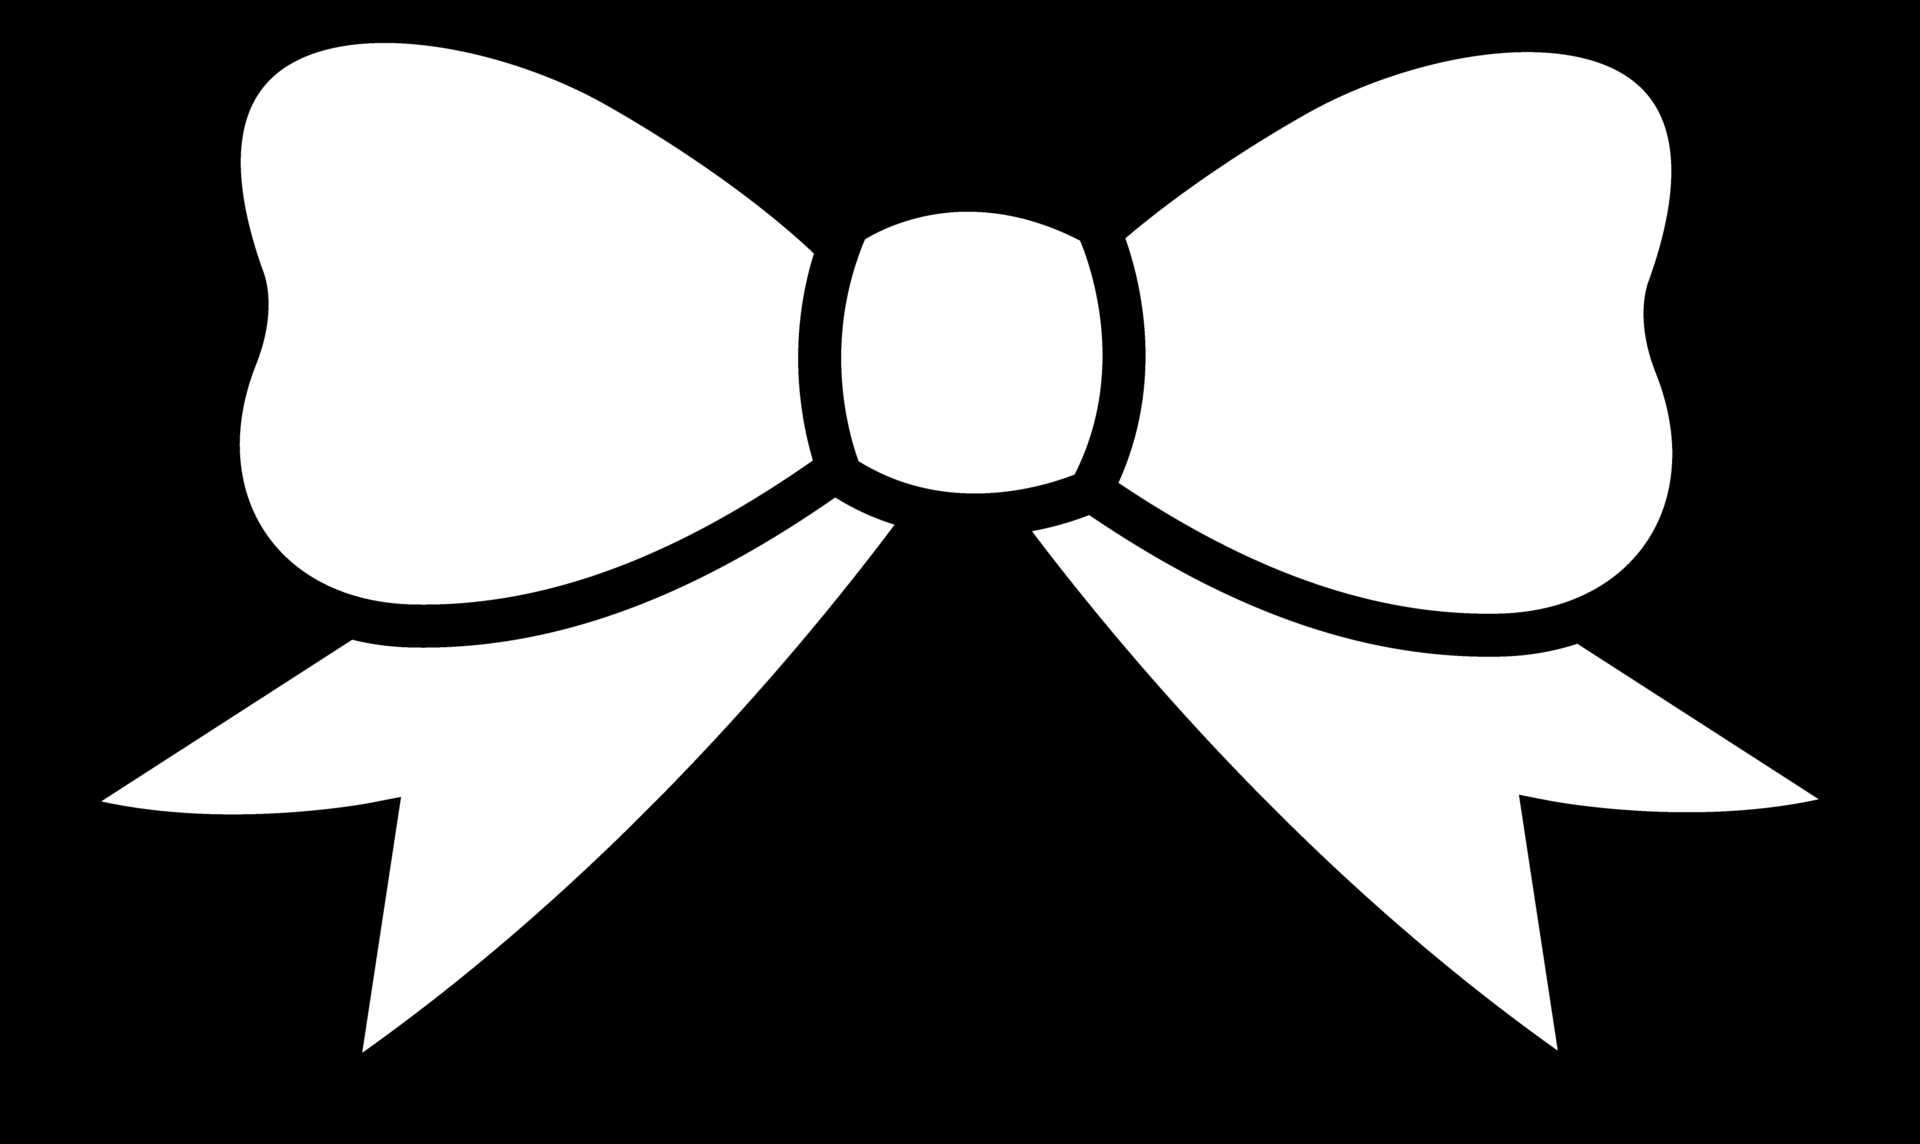 Bow Clipart Black And White-bow clipart black and white-1